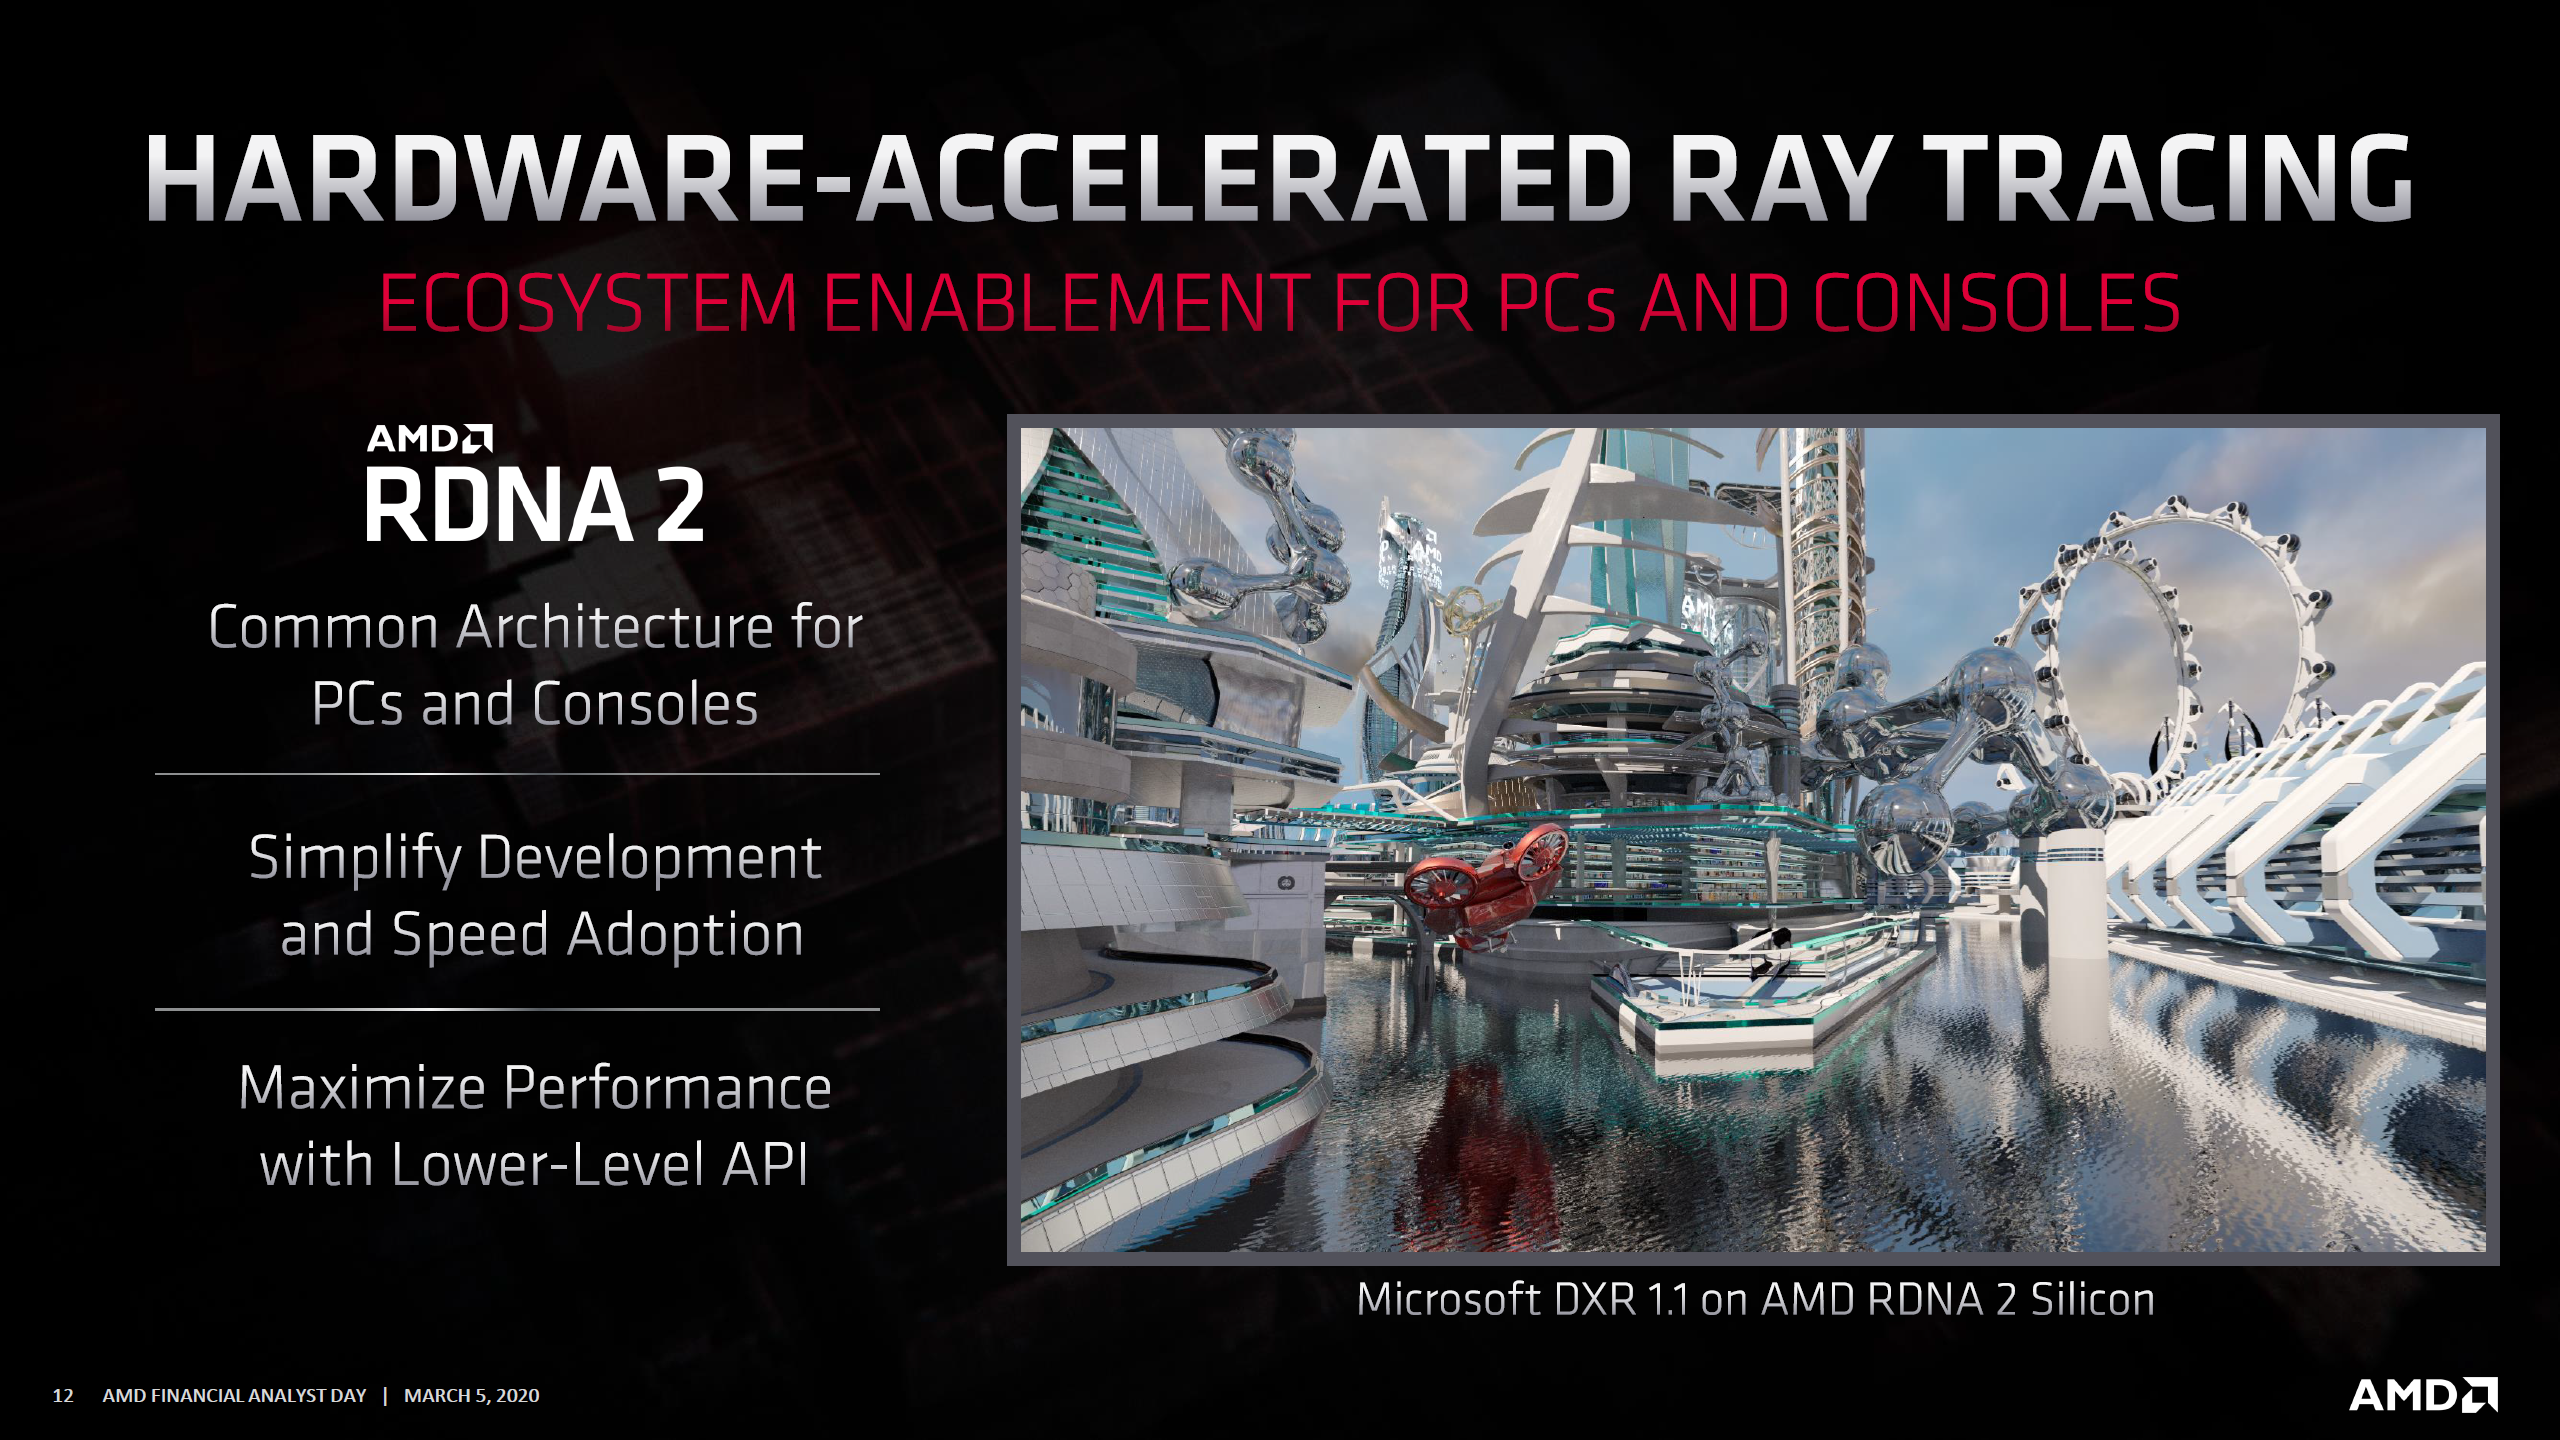 Amd Navi 23 Gpu For Radeon Rx Mainstream Graphics Cards Spotted